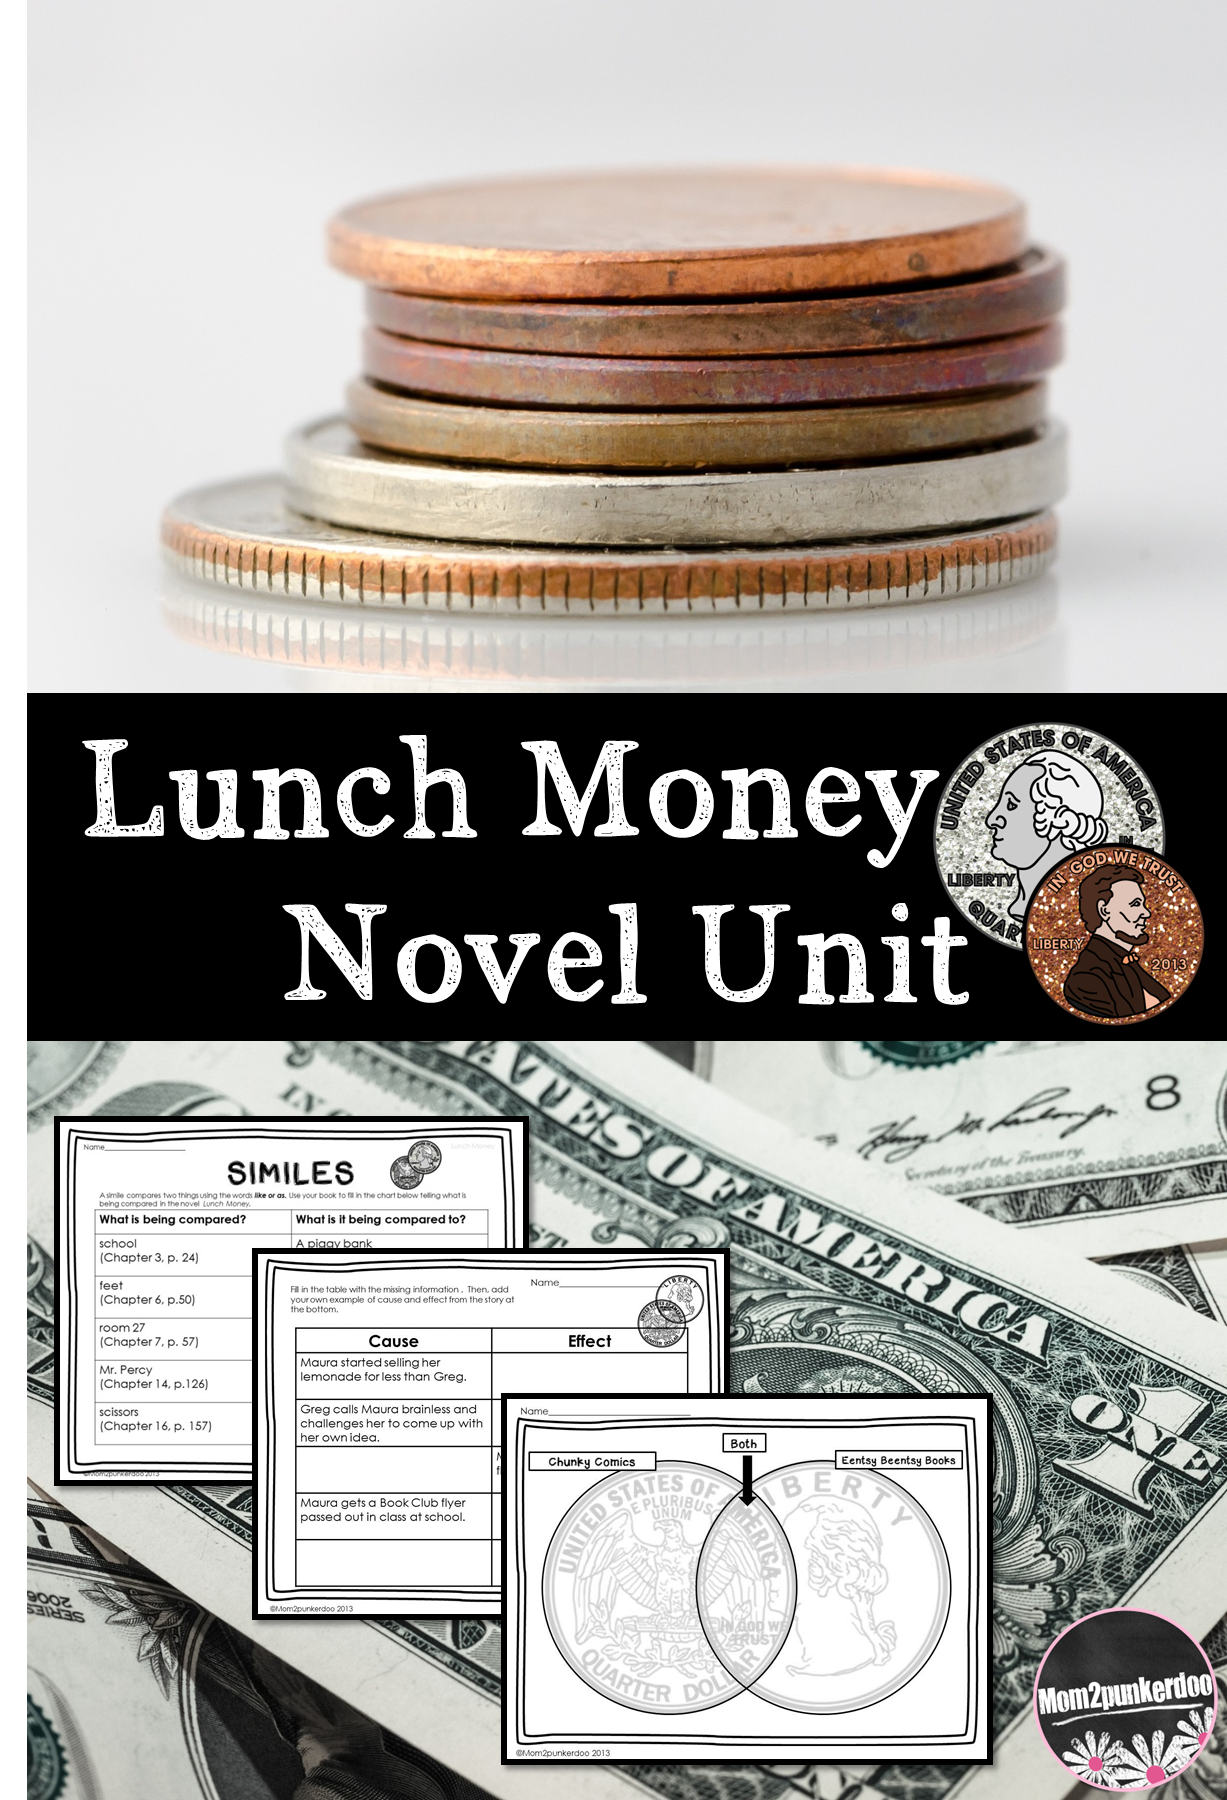 Lunch Money Novel Unit For Andrew Clement S Book Perfect Book For Integrating Money Lessons And Economics While You Novel Units Lunch Money Teaching Literature